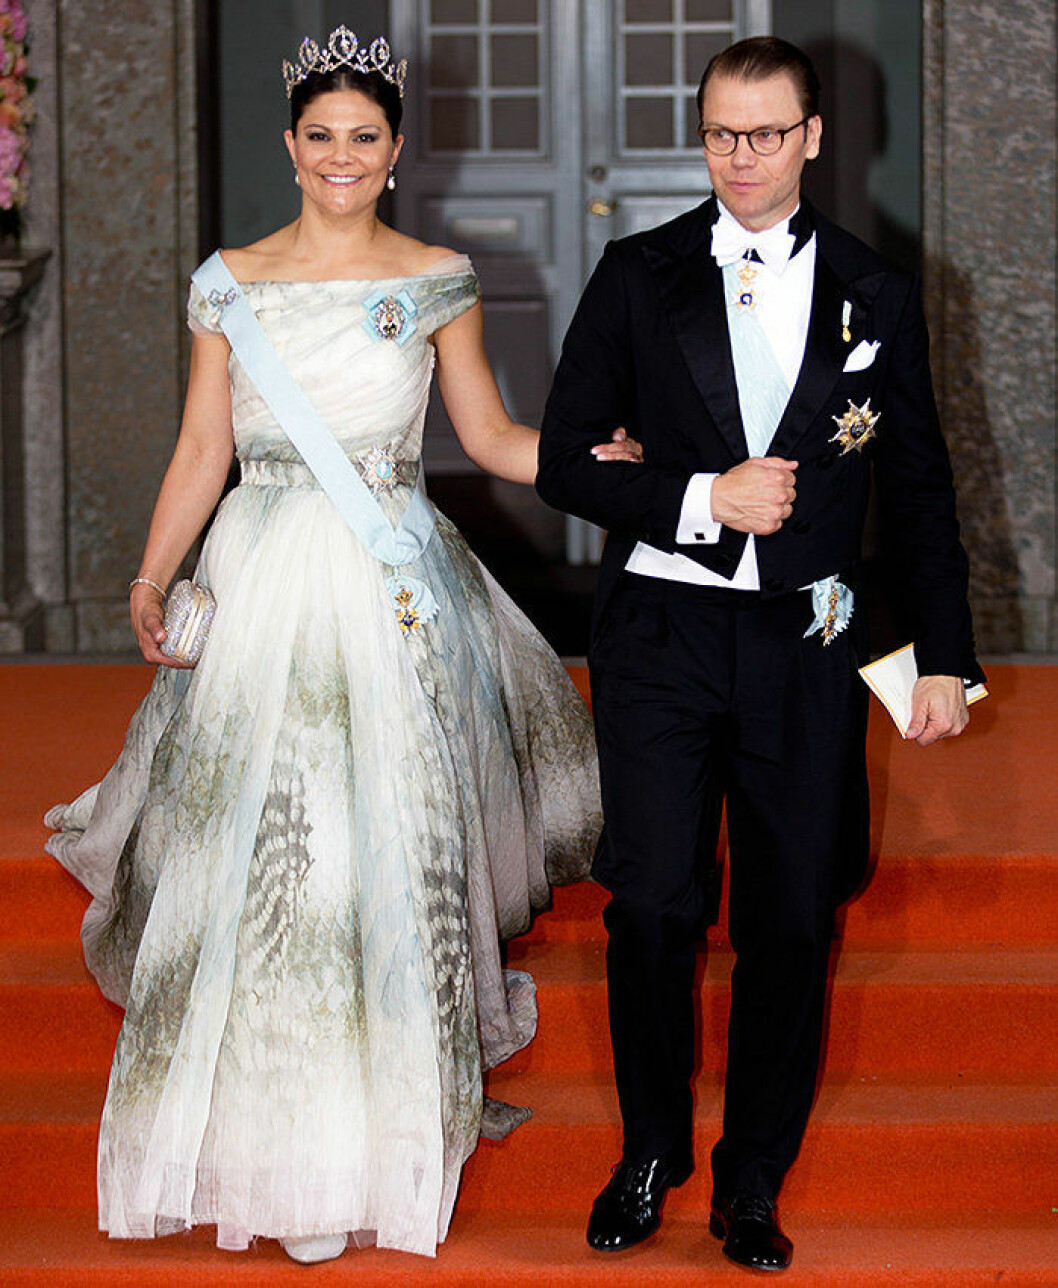 Royal wedding with Prince Carl Philip and Miss Sofia Hellqvist in the Royal Chapel at the Royal Palace in Stockholm. - arrivals; inner courtyard Victoria de Suede;Daniel Westling